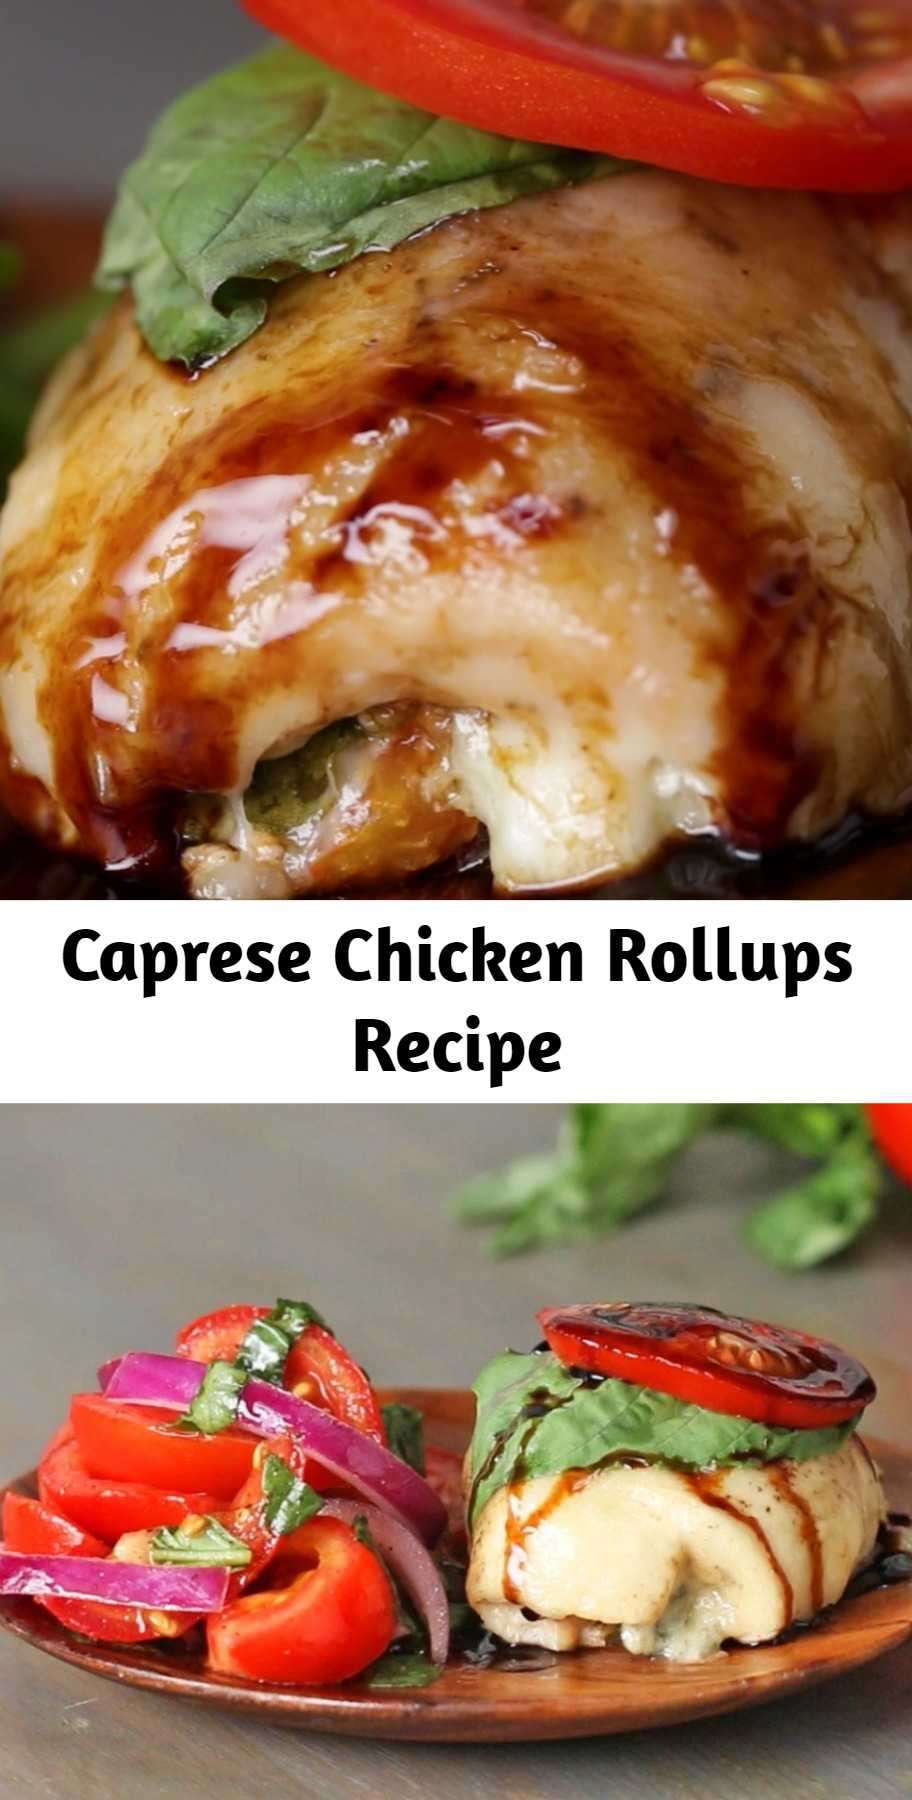 Caprese Chicken Rollups Recipe - Looking for a new way to enjoy caprese salad? Try these Caprese Chicken Rollups! You get all the fun of a caprese salad stuffed into chicken breast! It was really good!